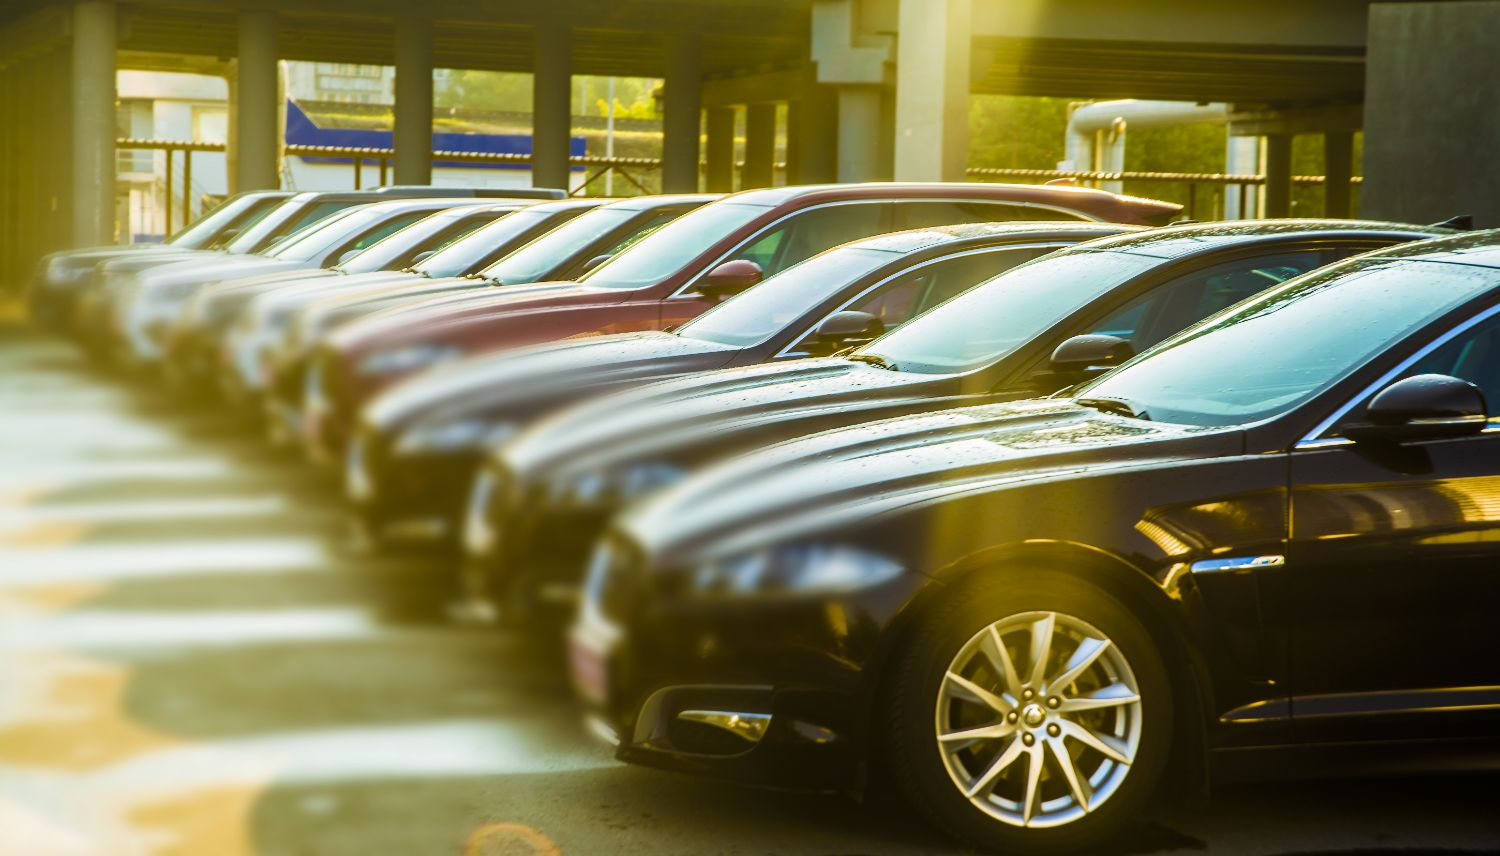 Auto Dealership Security Services